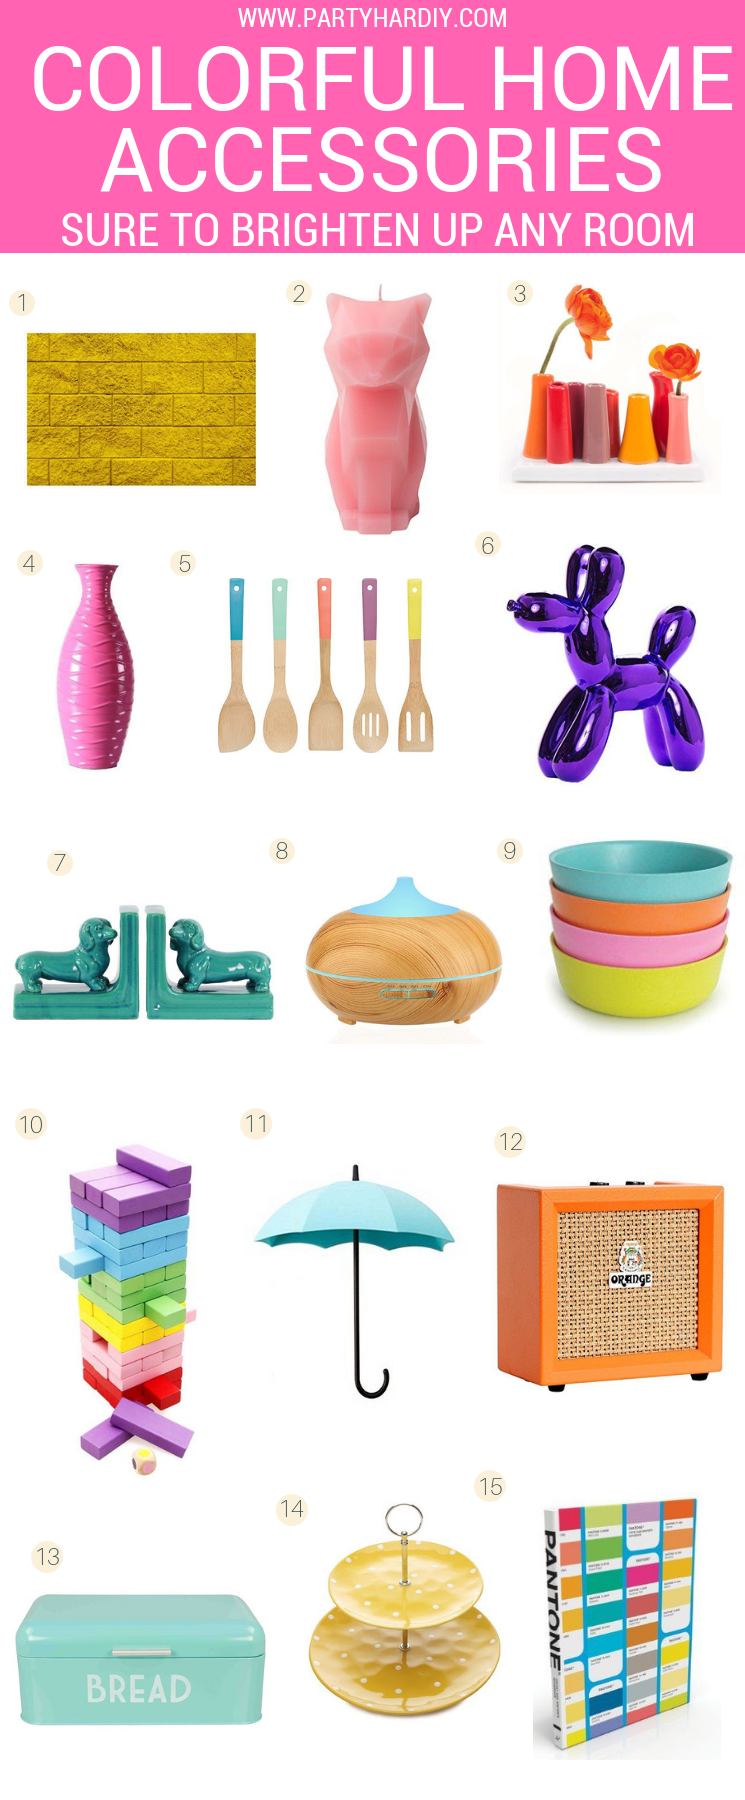 I've rounded up some colorful but whimsical home finds that are sure to brighten up even the most monochromatic home. Click for the full list!